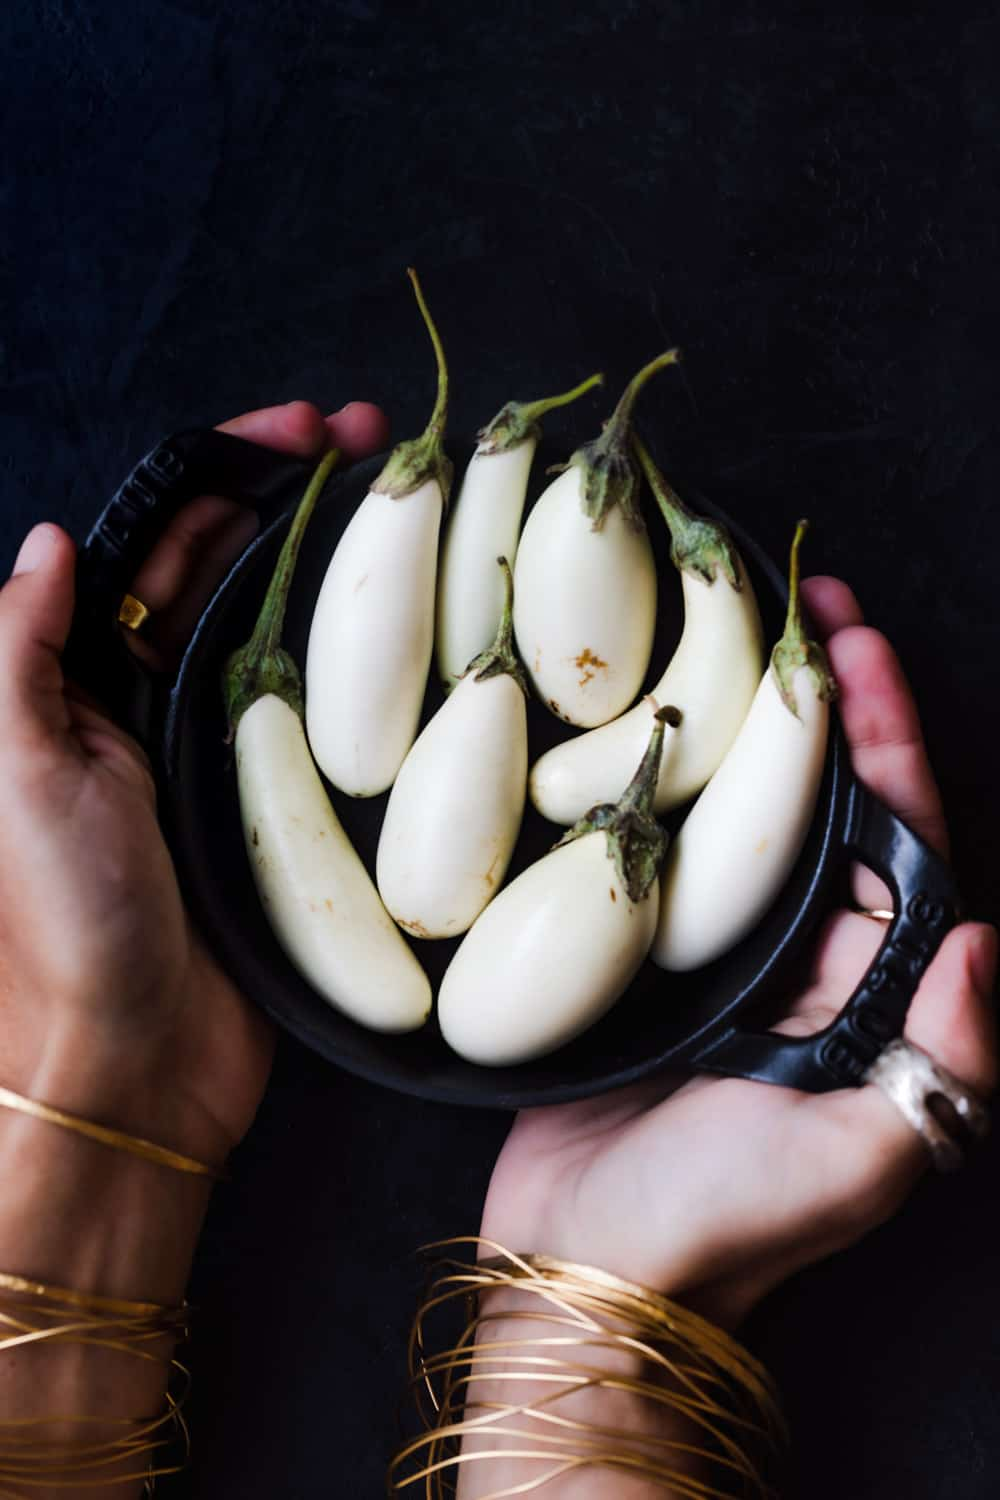 Daniela Gerson carrying a little black bowl filled with little white eggplants, on a black background.